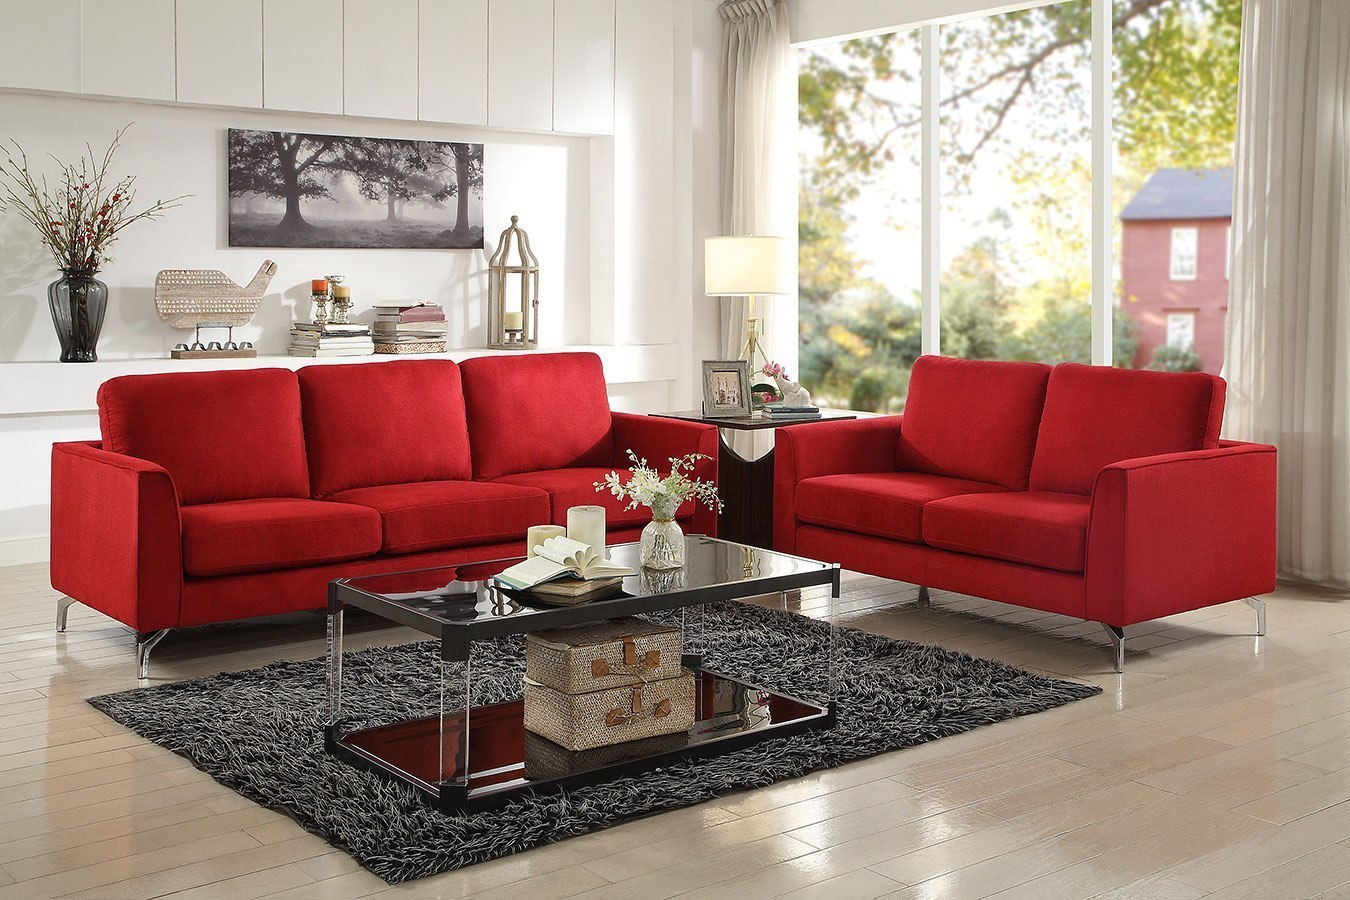 Red Living Room: Canaan Living Room Set (Red) By Homelegance